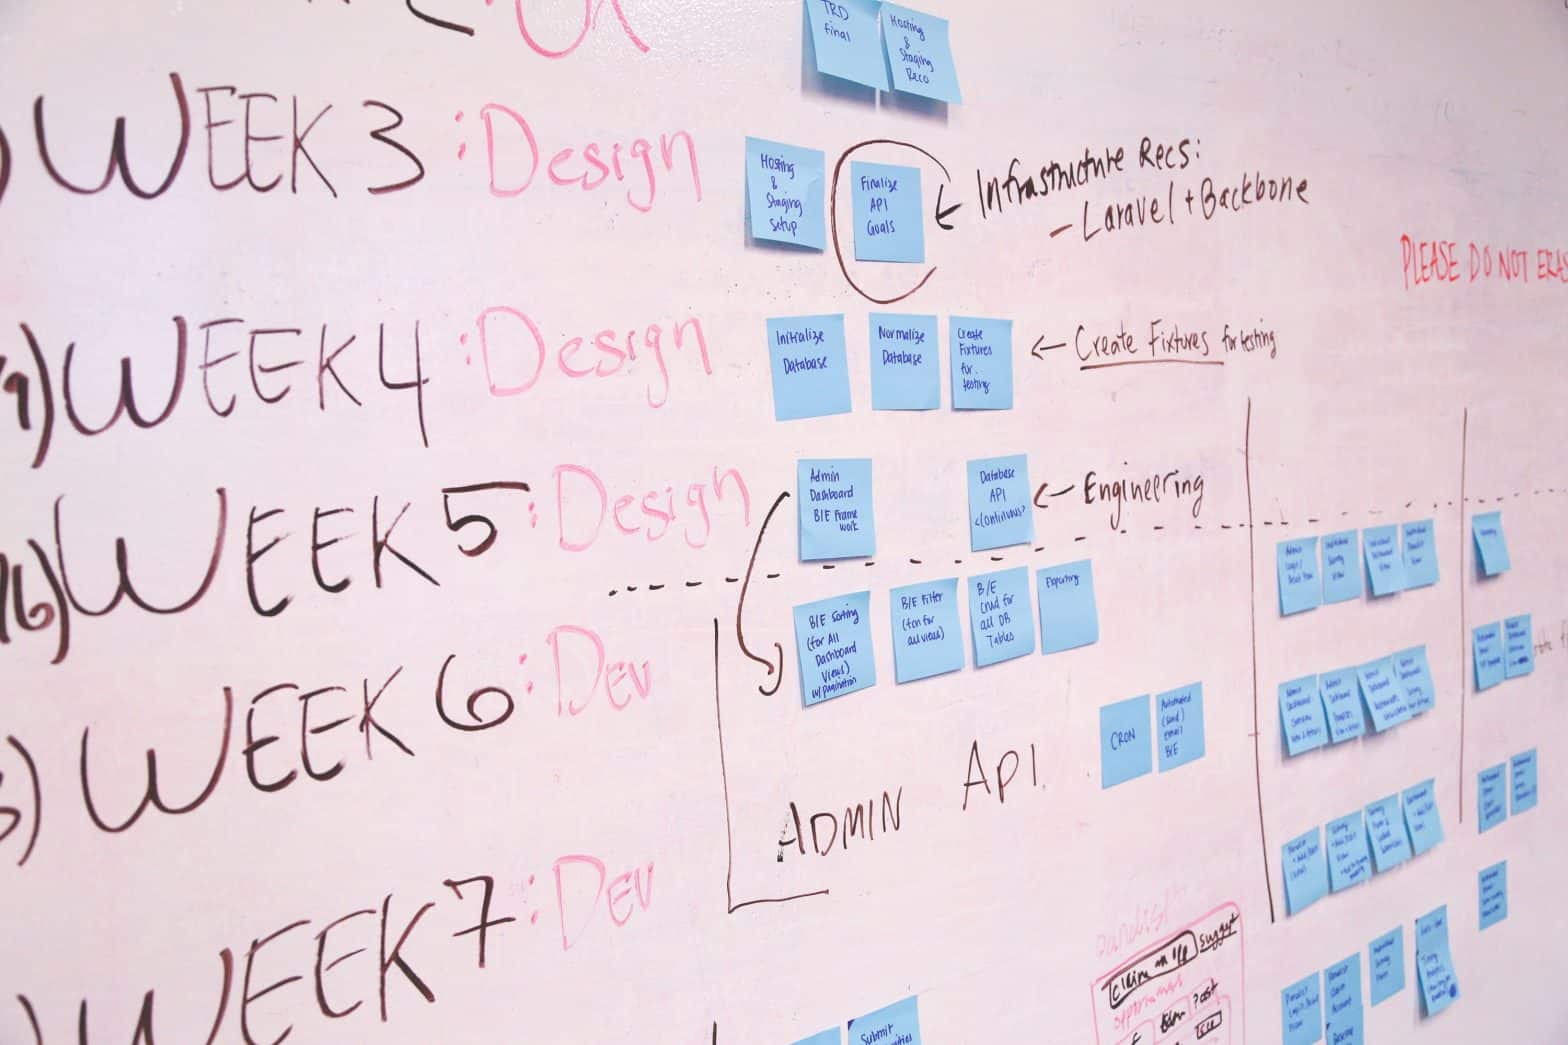 A picture of a whiteboard with a plan, and deadlines. Both reasons why goal setting is important.